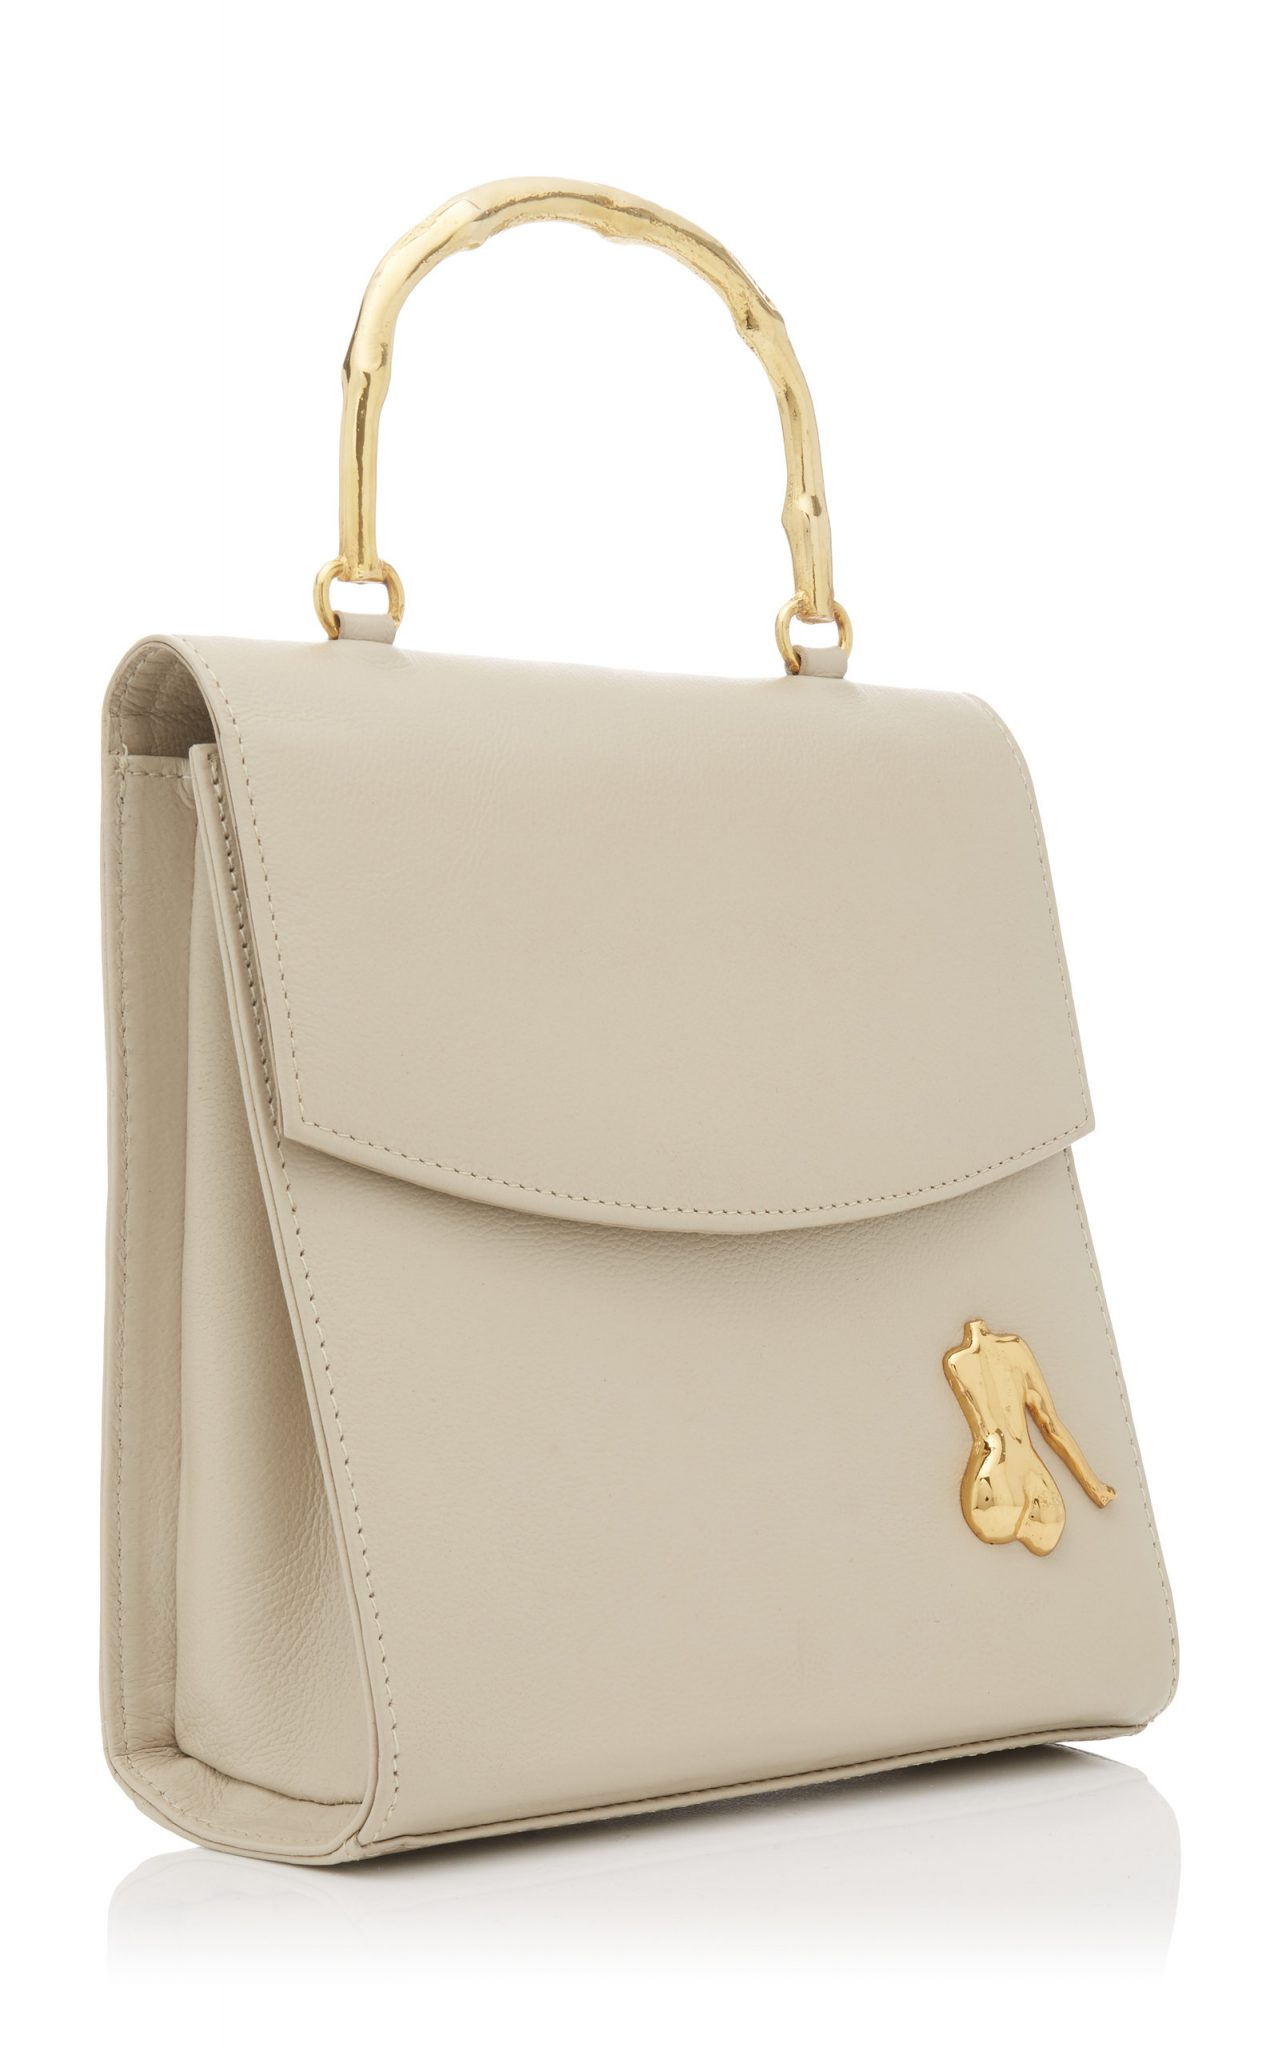 CLAUDE OFF WHITE LEATHER